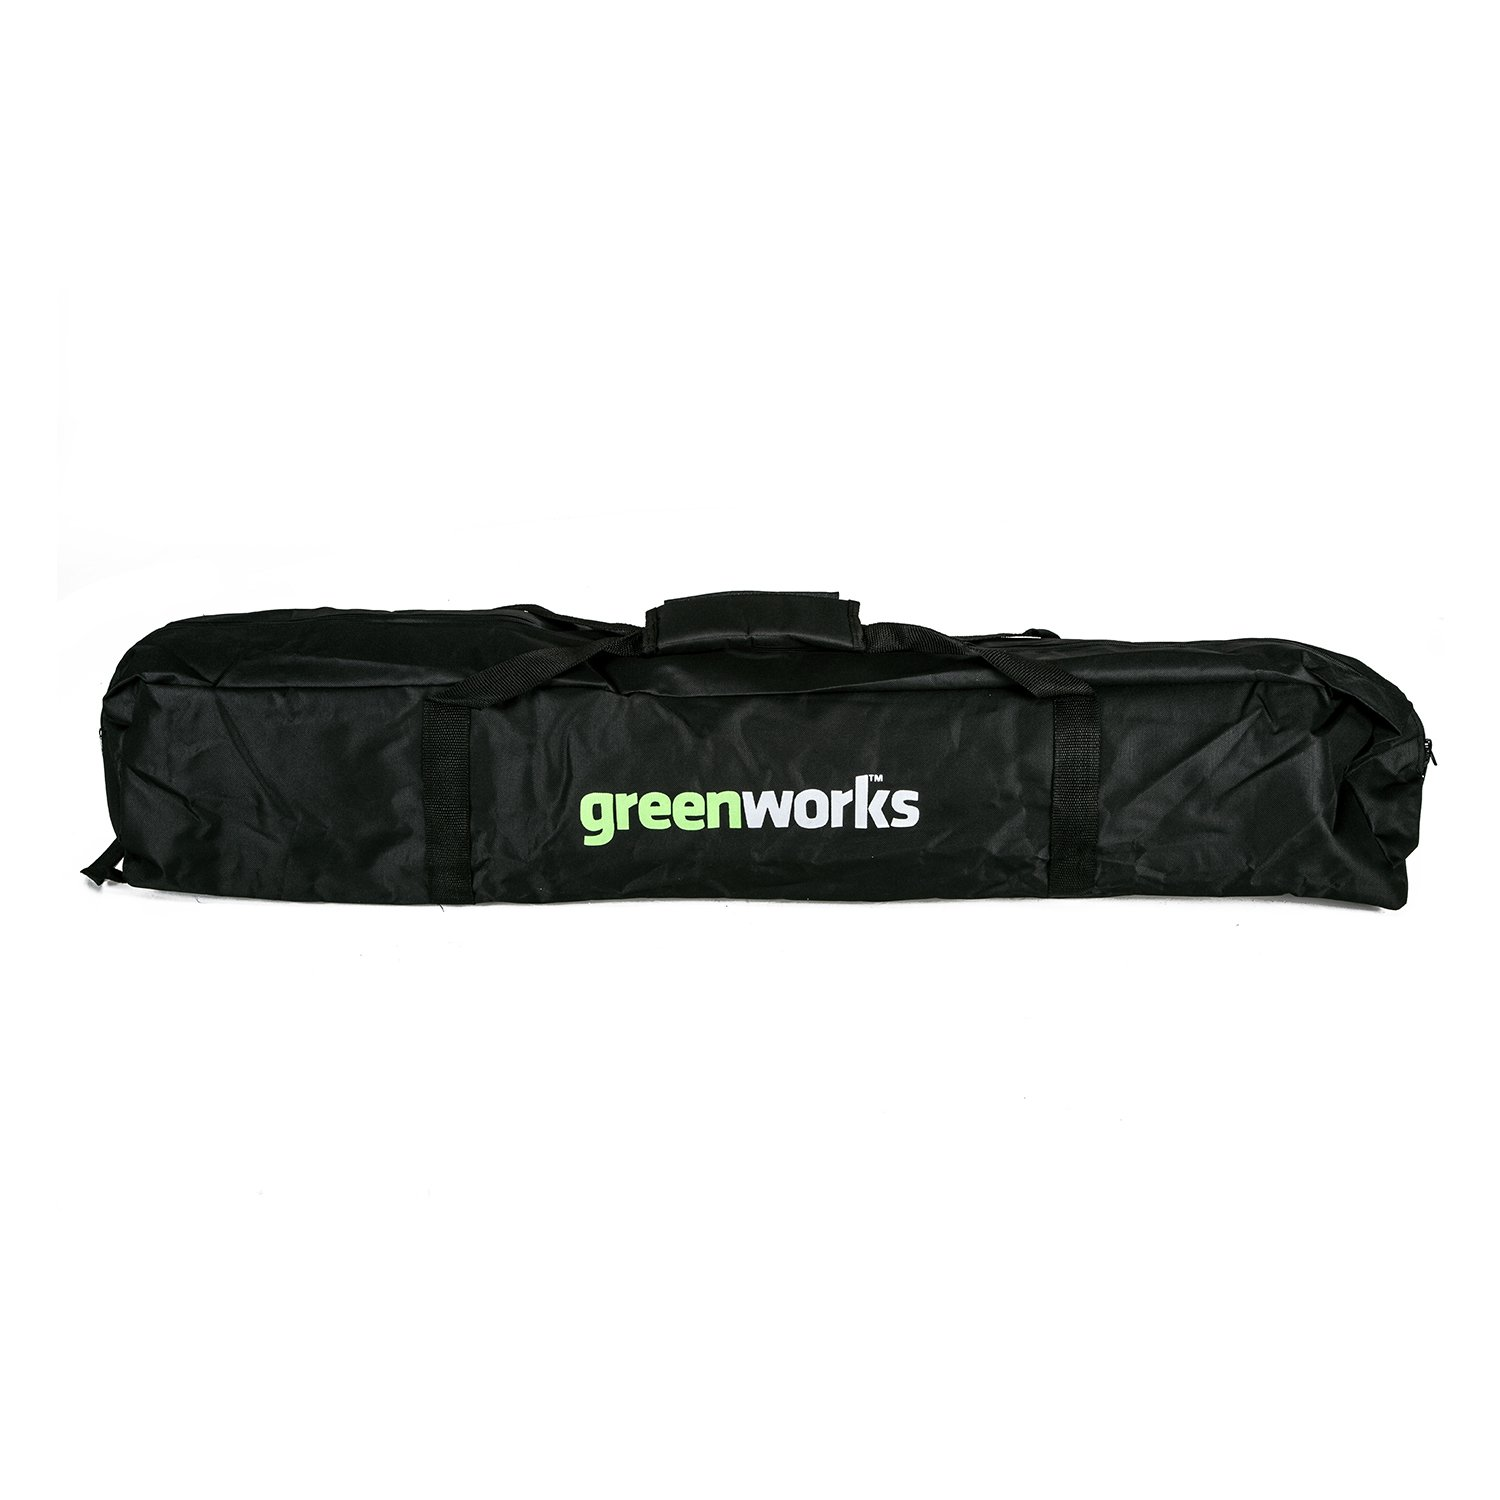 Greenworks Universal Pole Saw Carry Case PC0A00